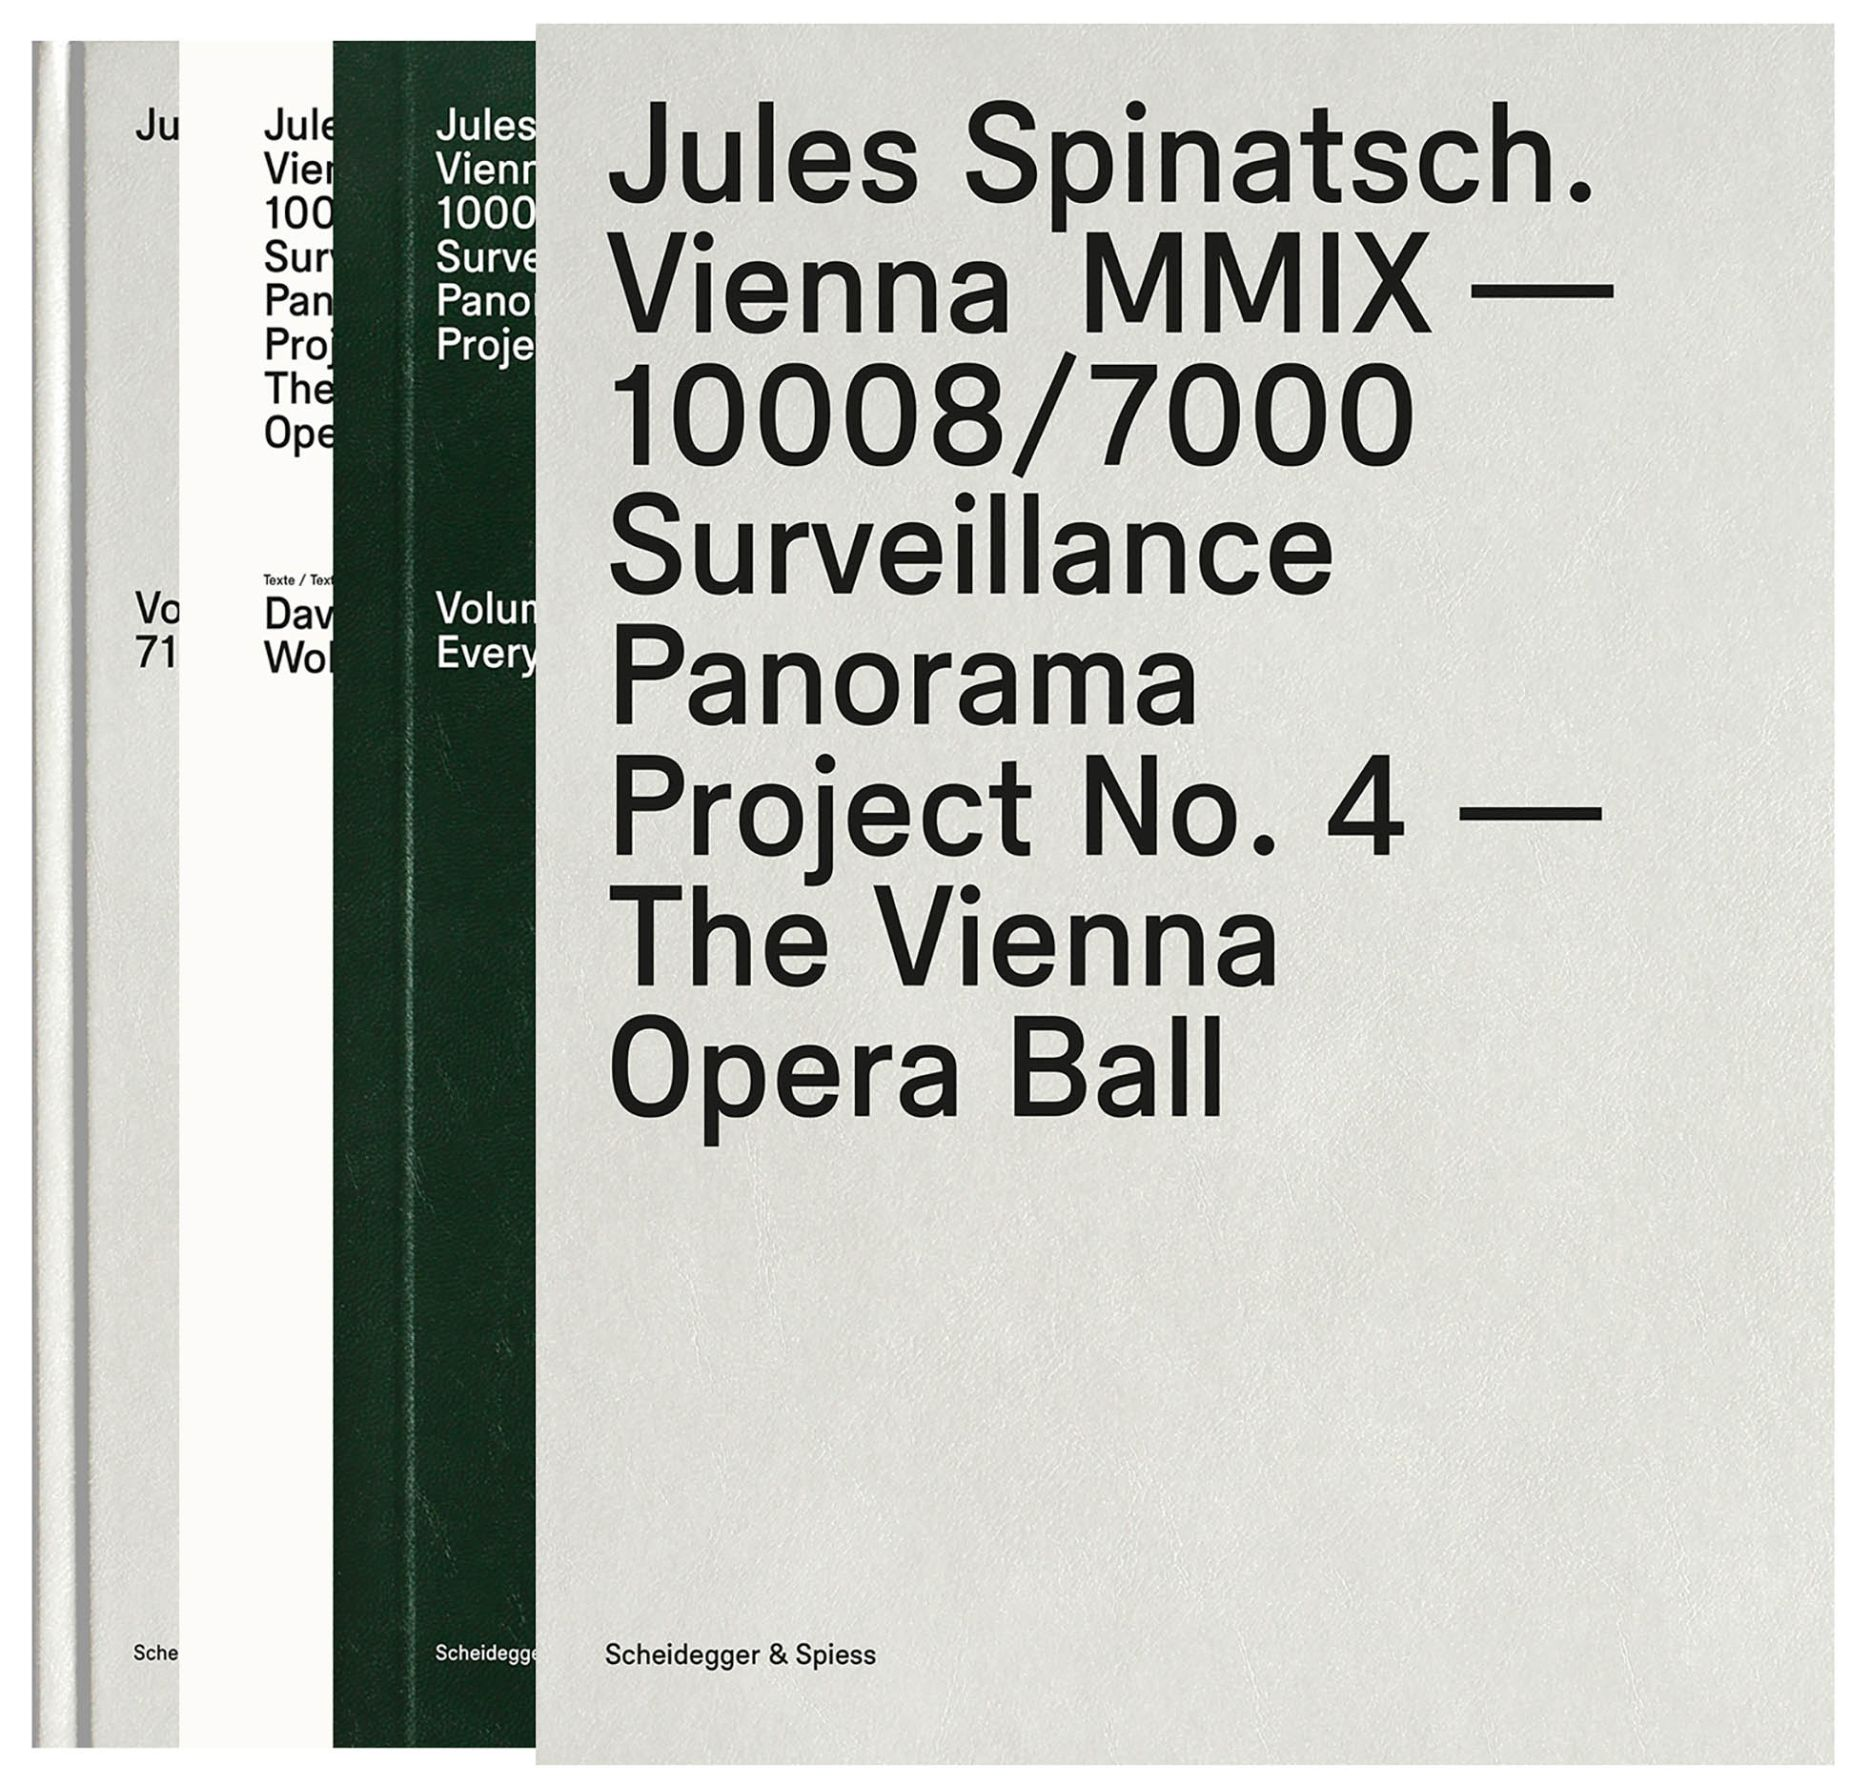 Jules Spinatsch. Vienna MMIX-10008/7000: Surveillance Panorama Project No. 4 - The Vienna Opera Ball